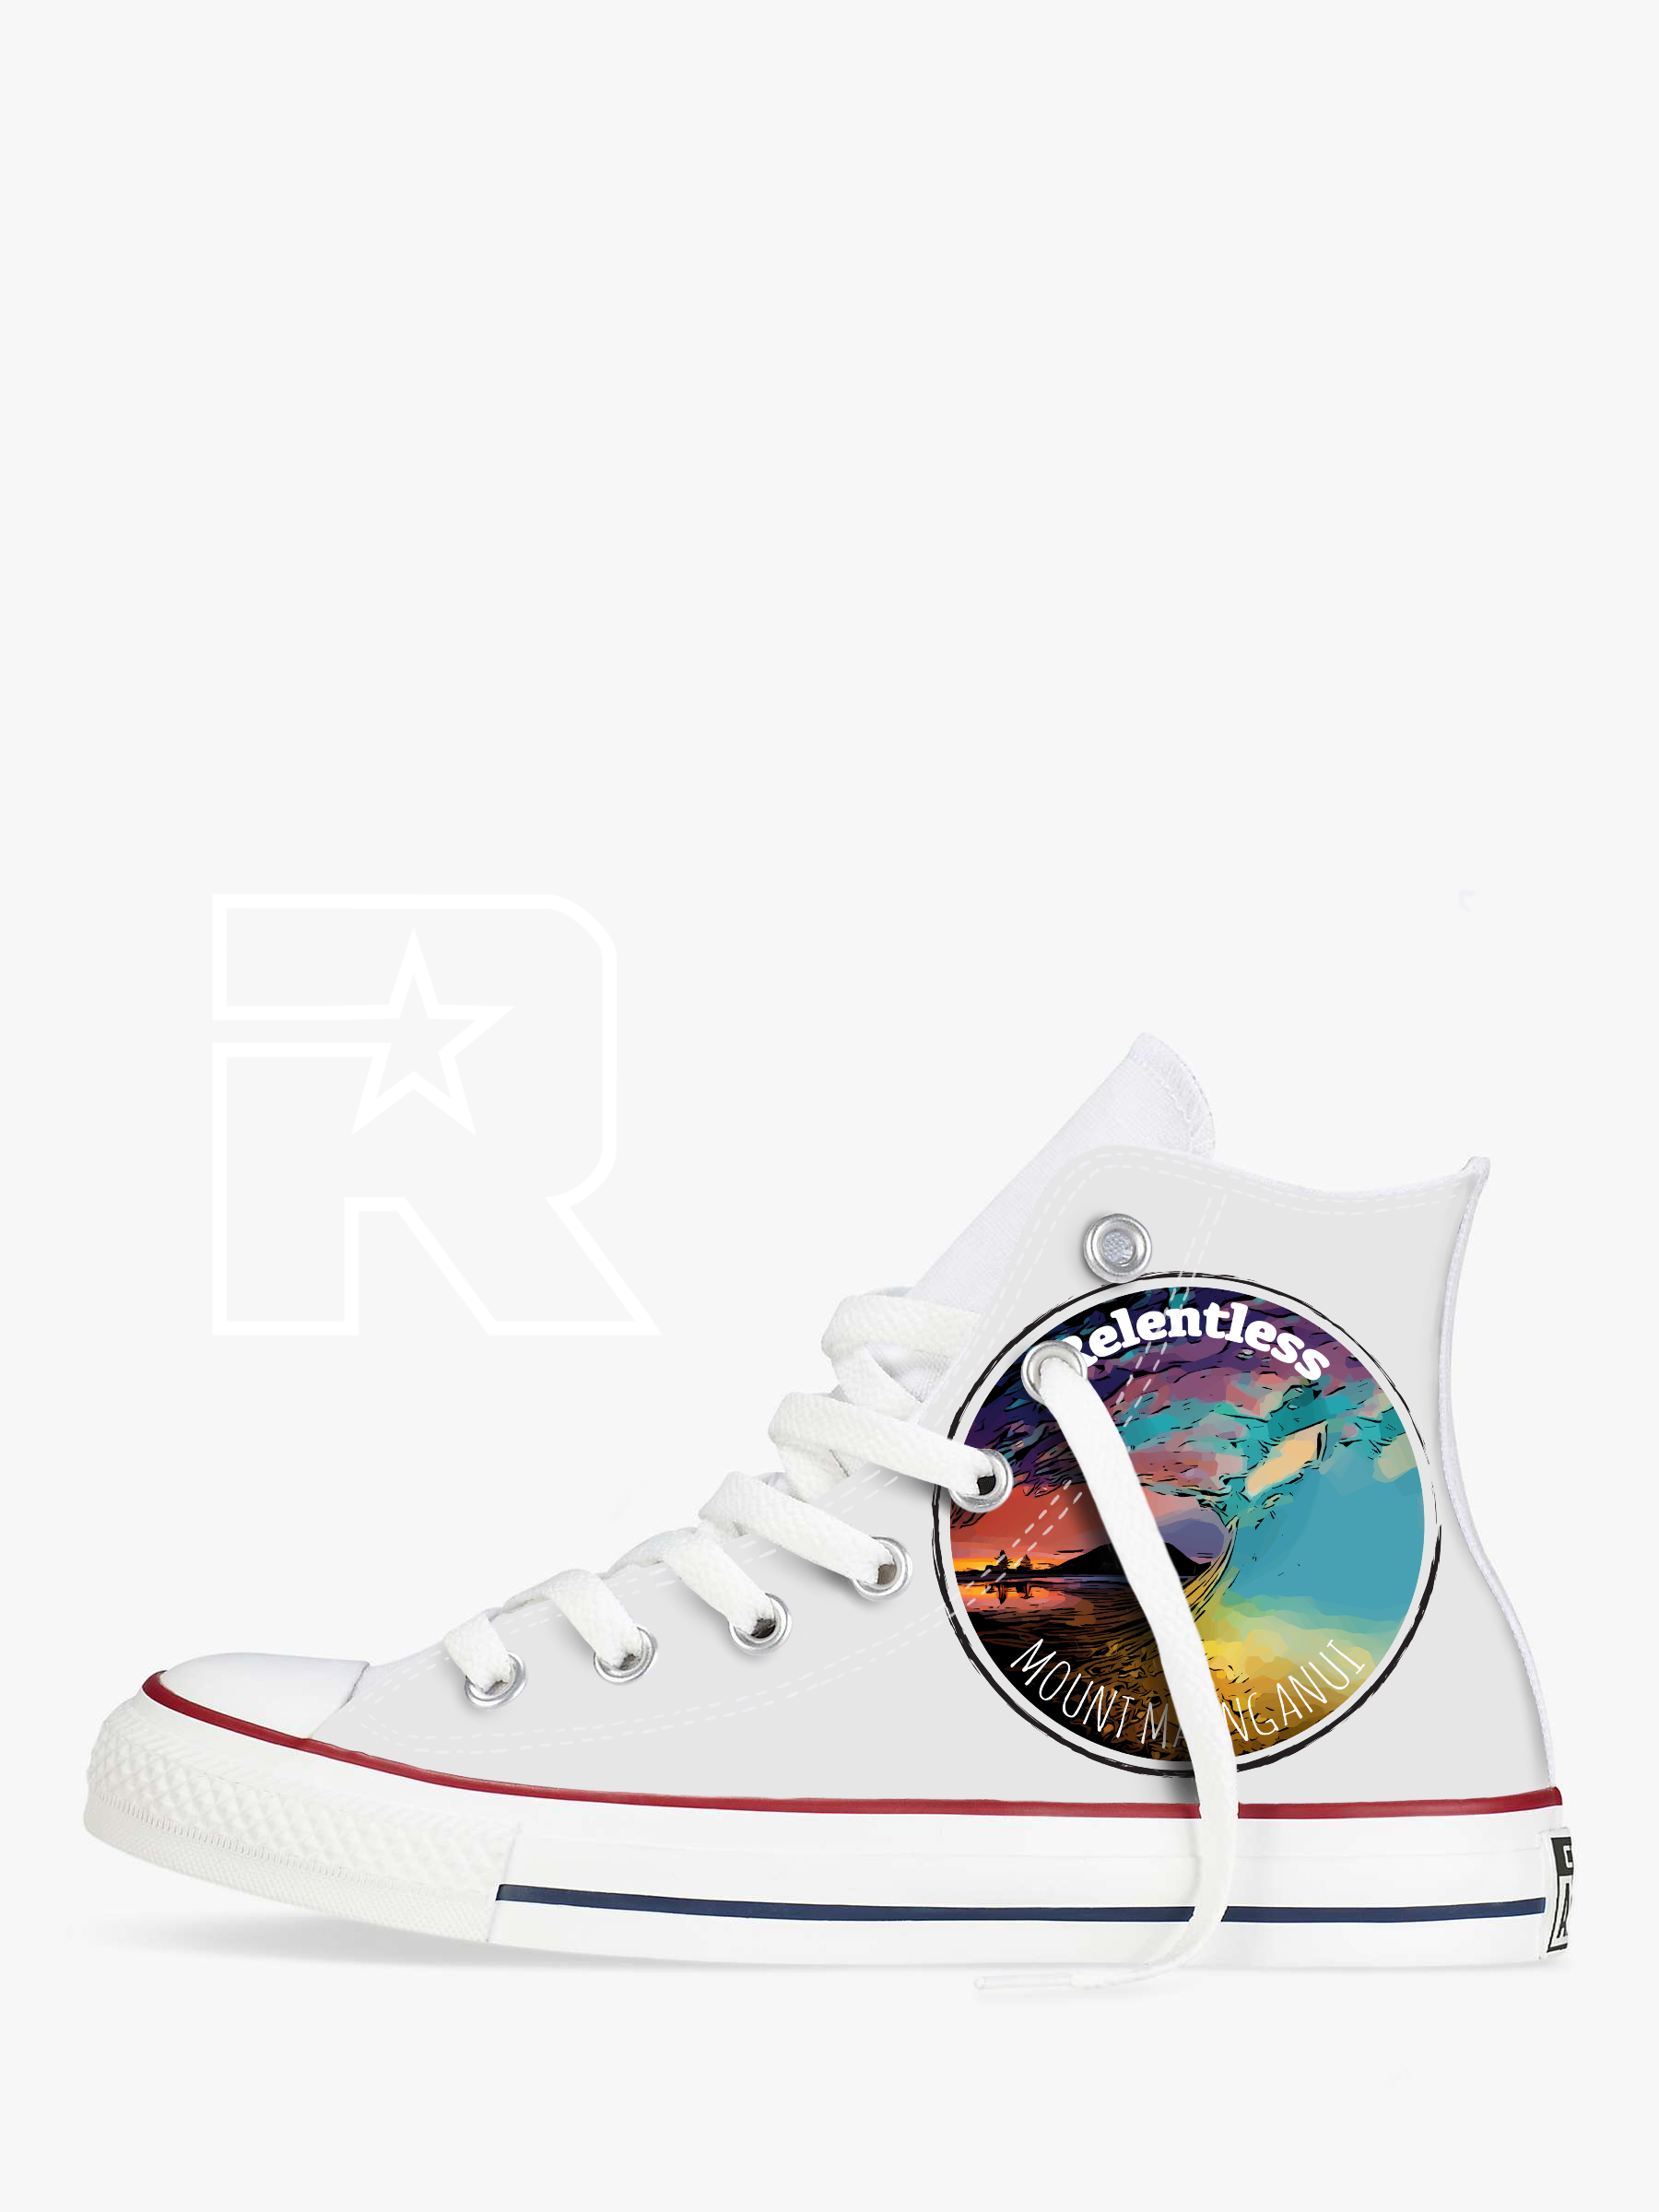 Mauao Beach Life for Life High Top Converse